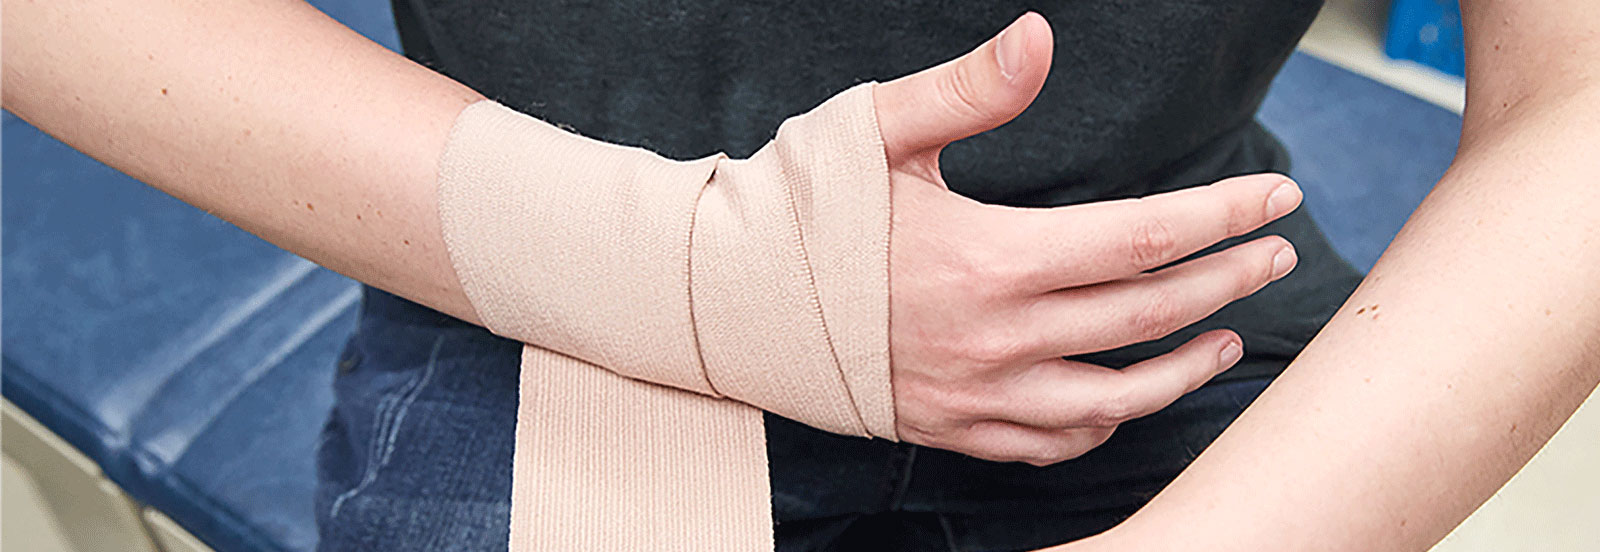 person wrapping bandage around sprained wrist